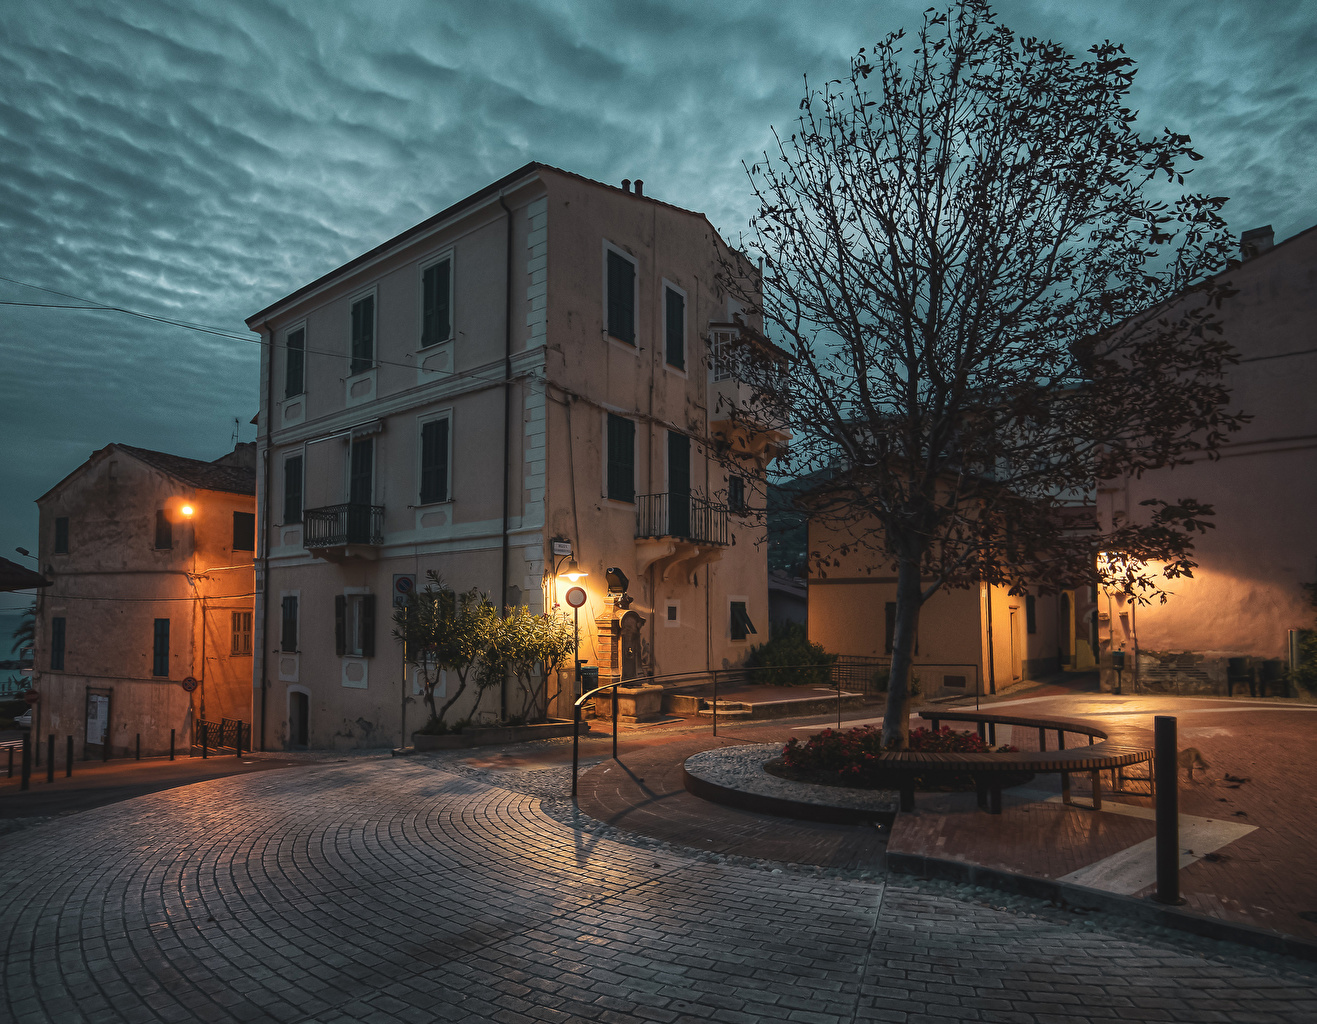 Images Italy Ospedaletti Street Night Bench Street lights Houses Cities night time Building